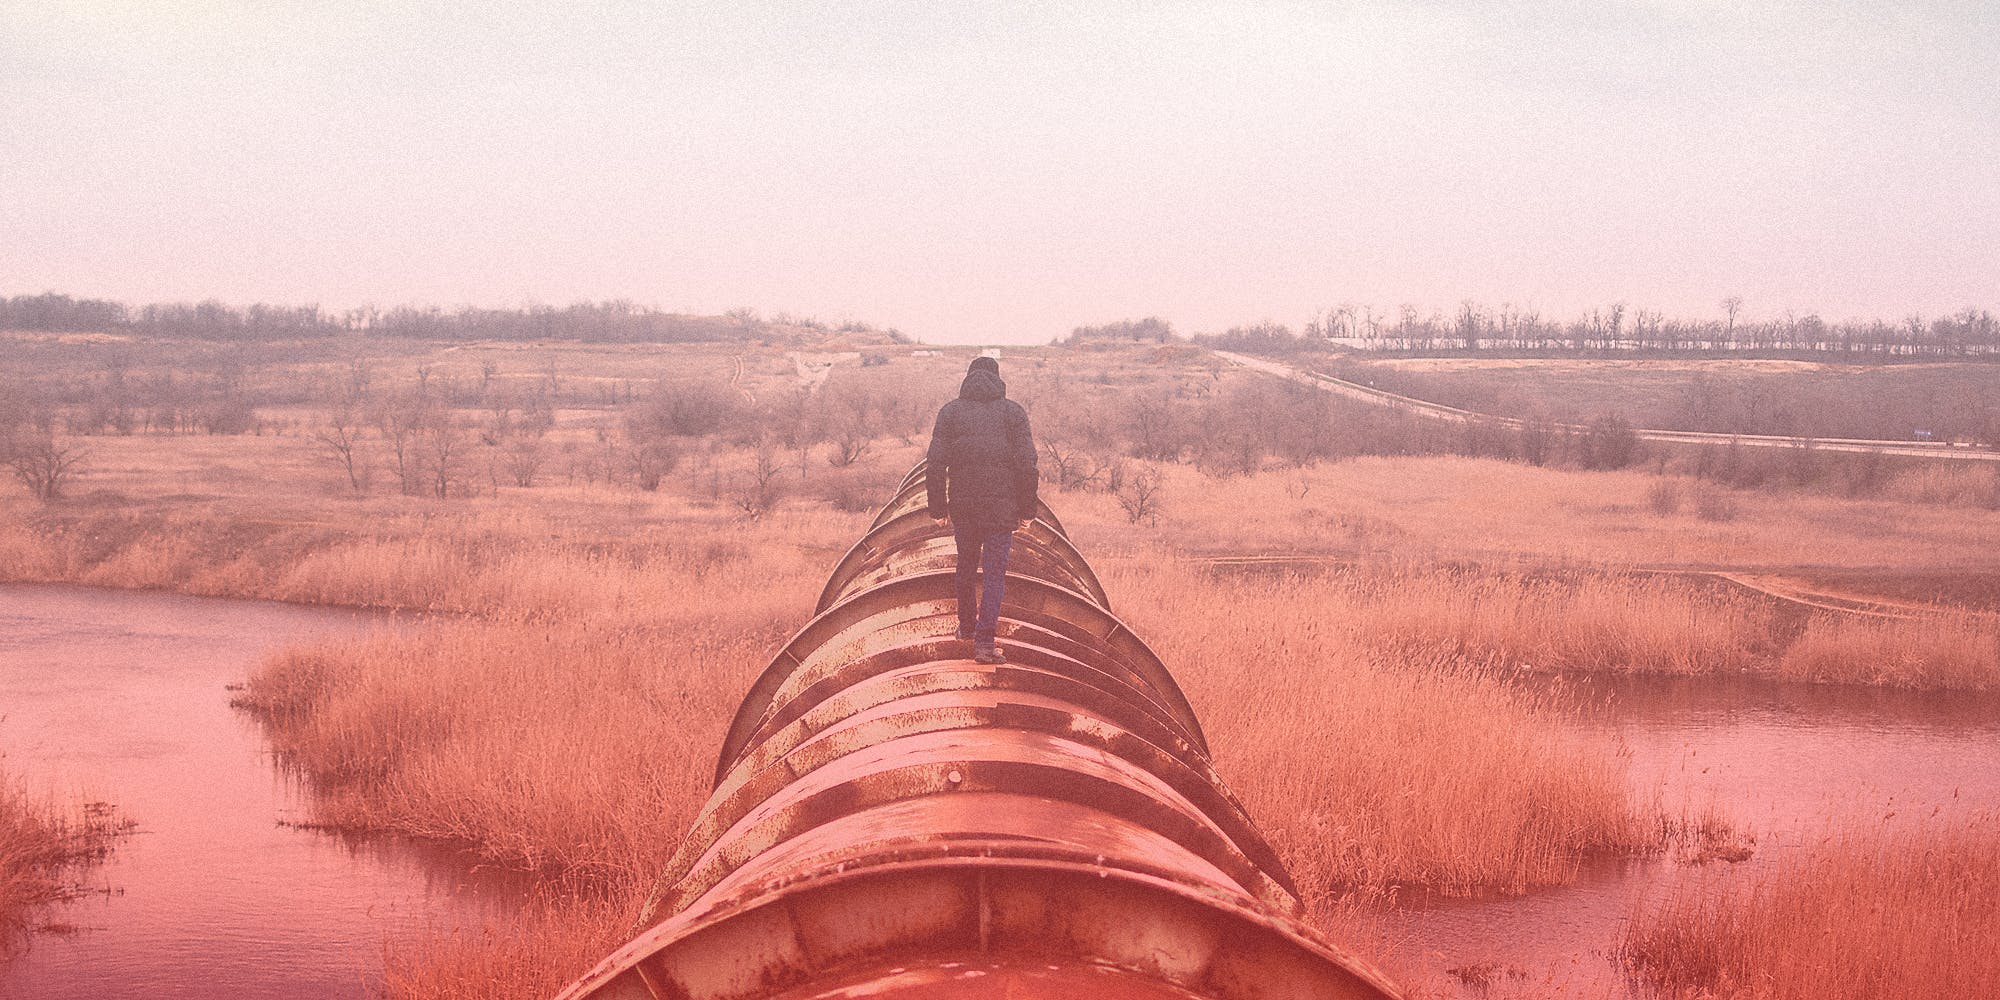 A man walks on an industrial pipeline.